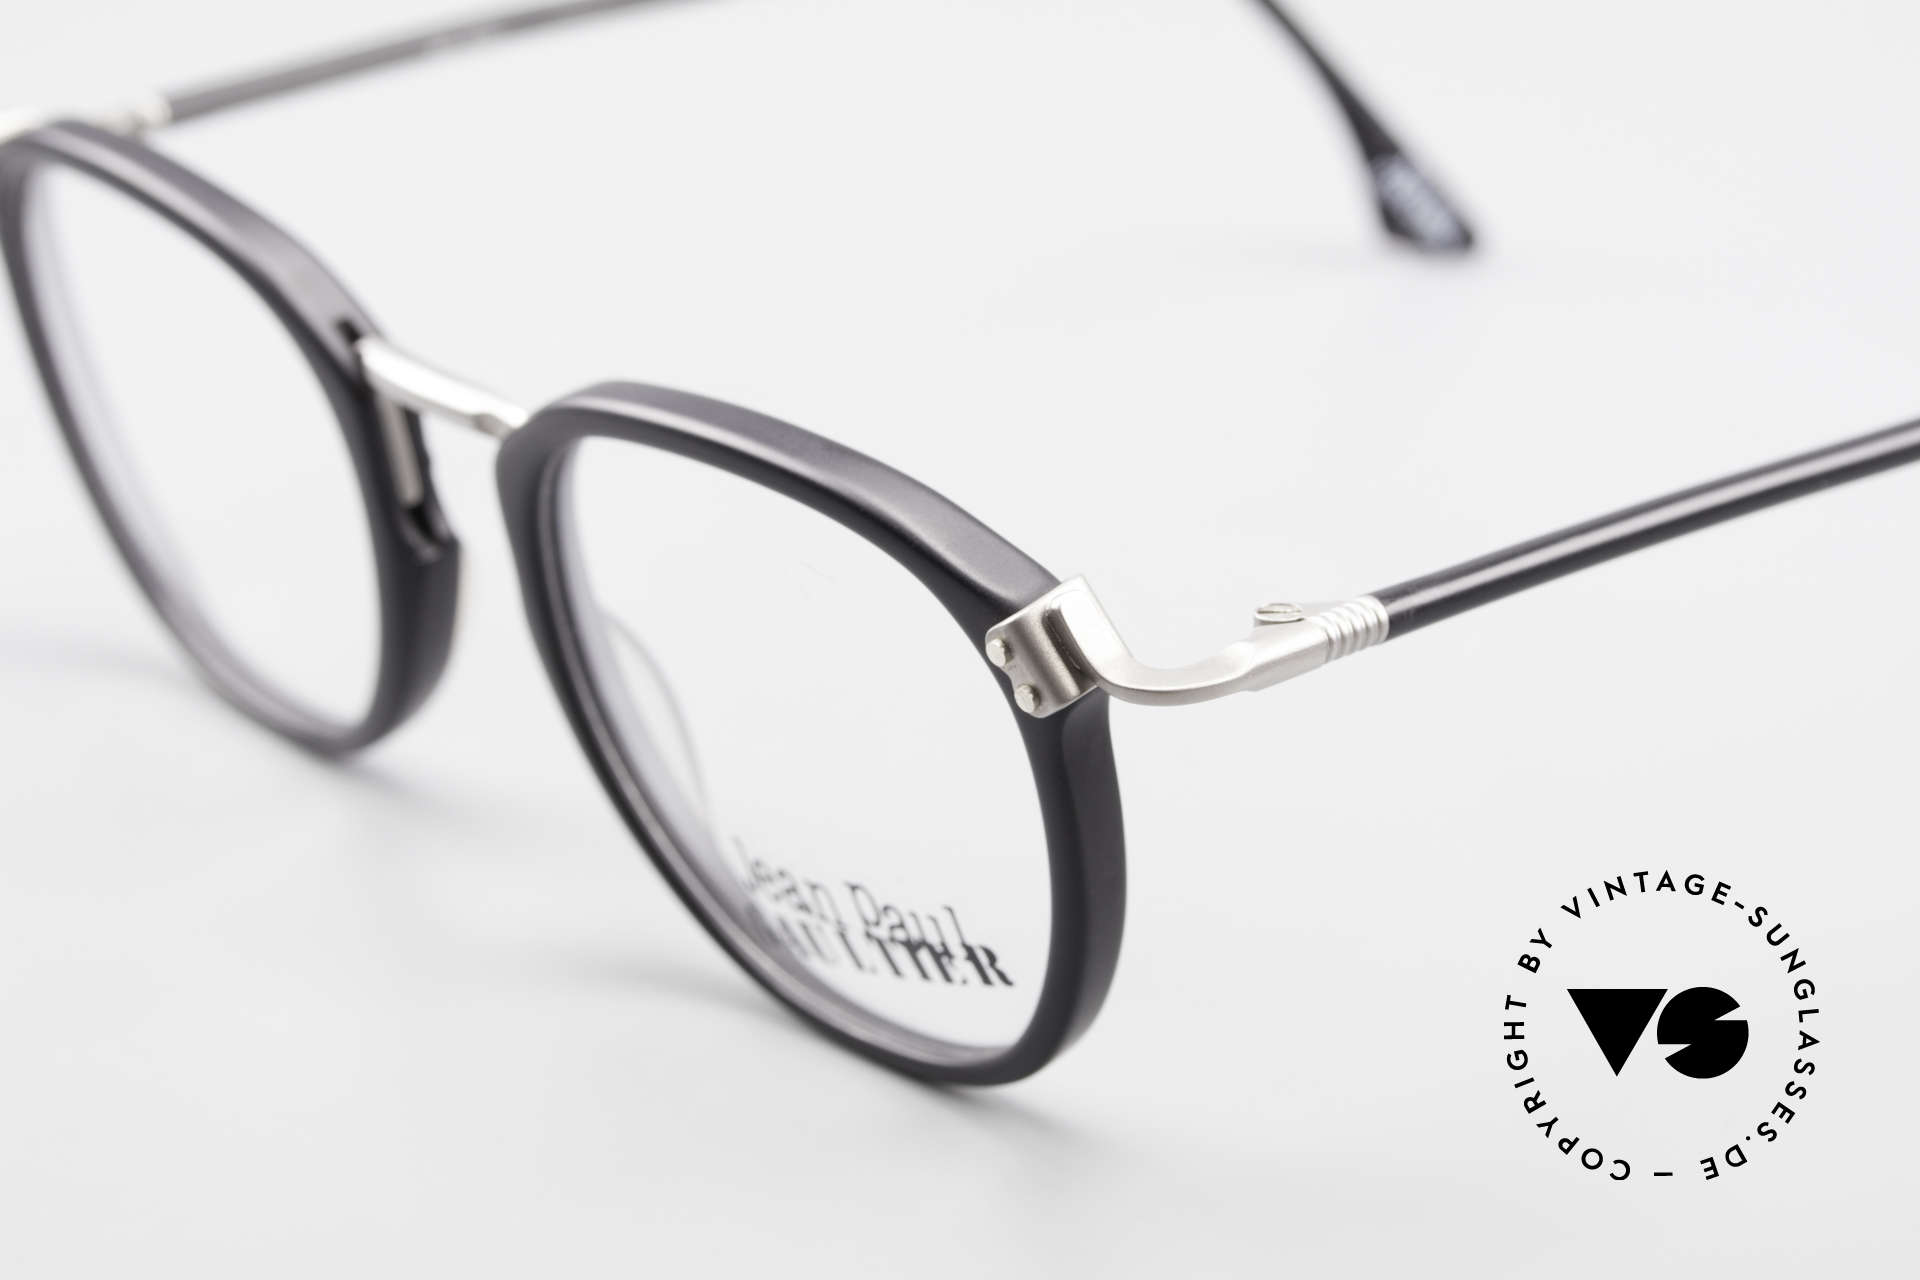 Jean Paul Gaultier 55-1272 Old Vintage Glasses No Retro, NO RETRO specs; an authentic old original from 1994, Made for Men and Women